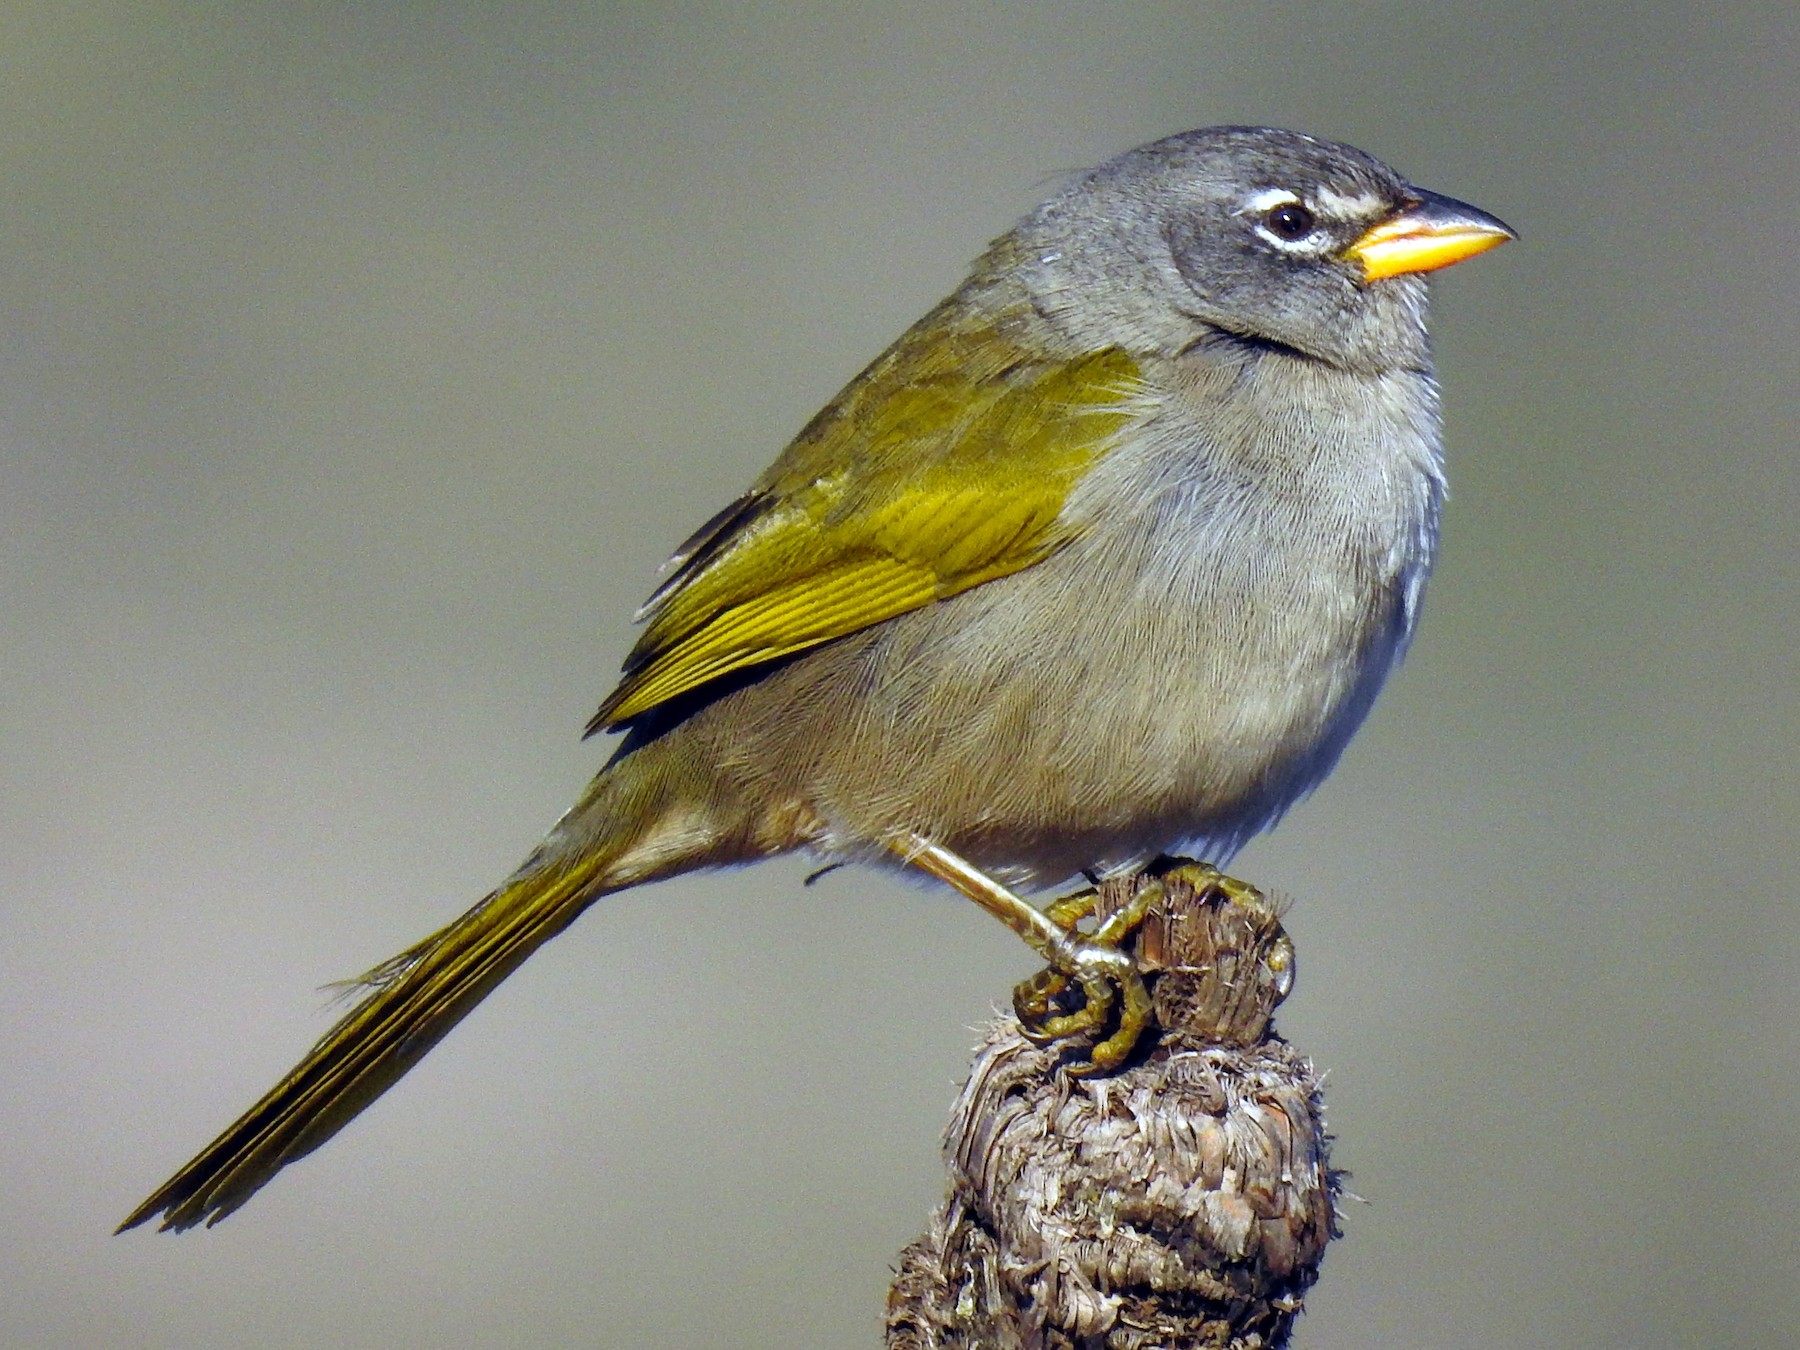 Pale-throated Pampa-Finch - Pam Rasmussen